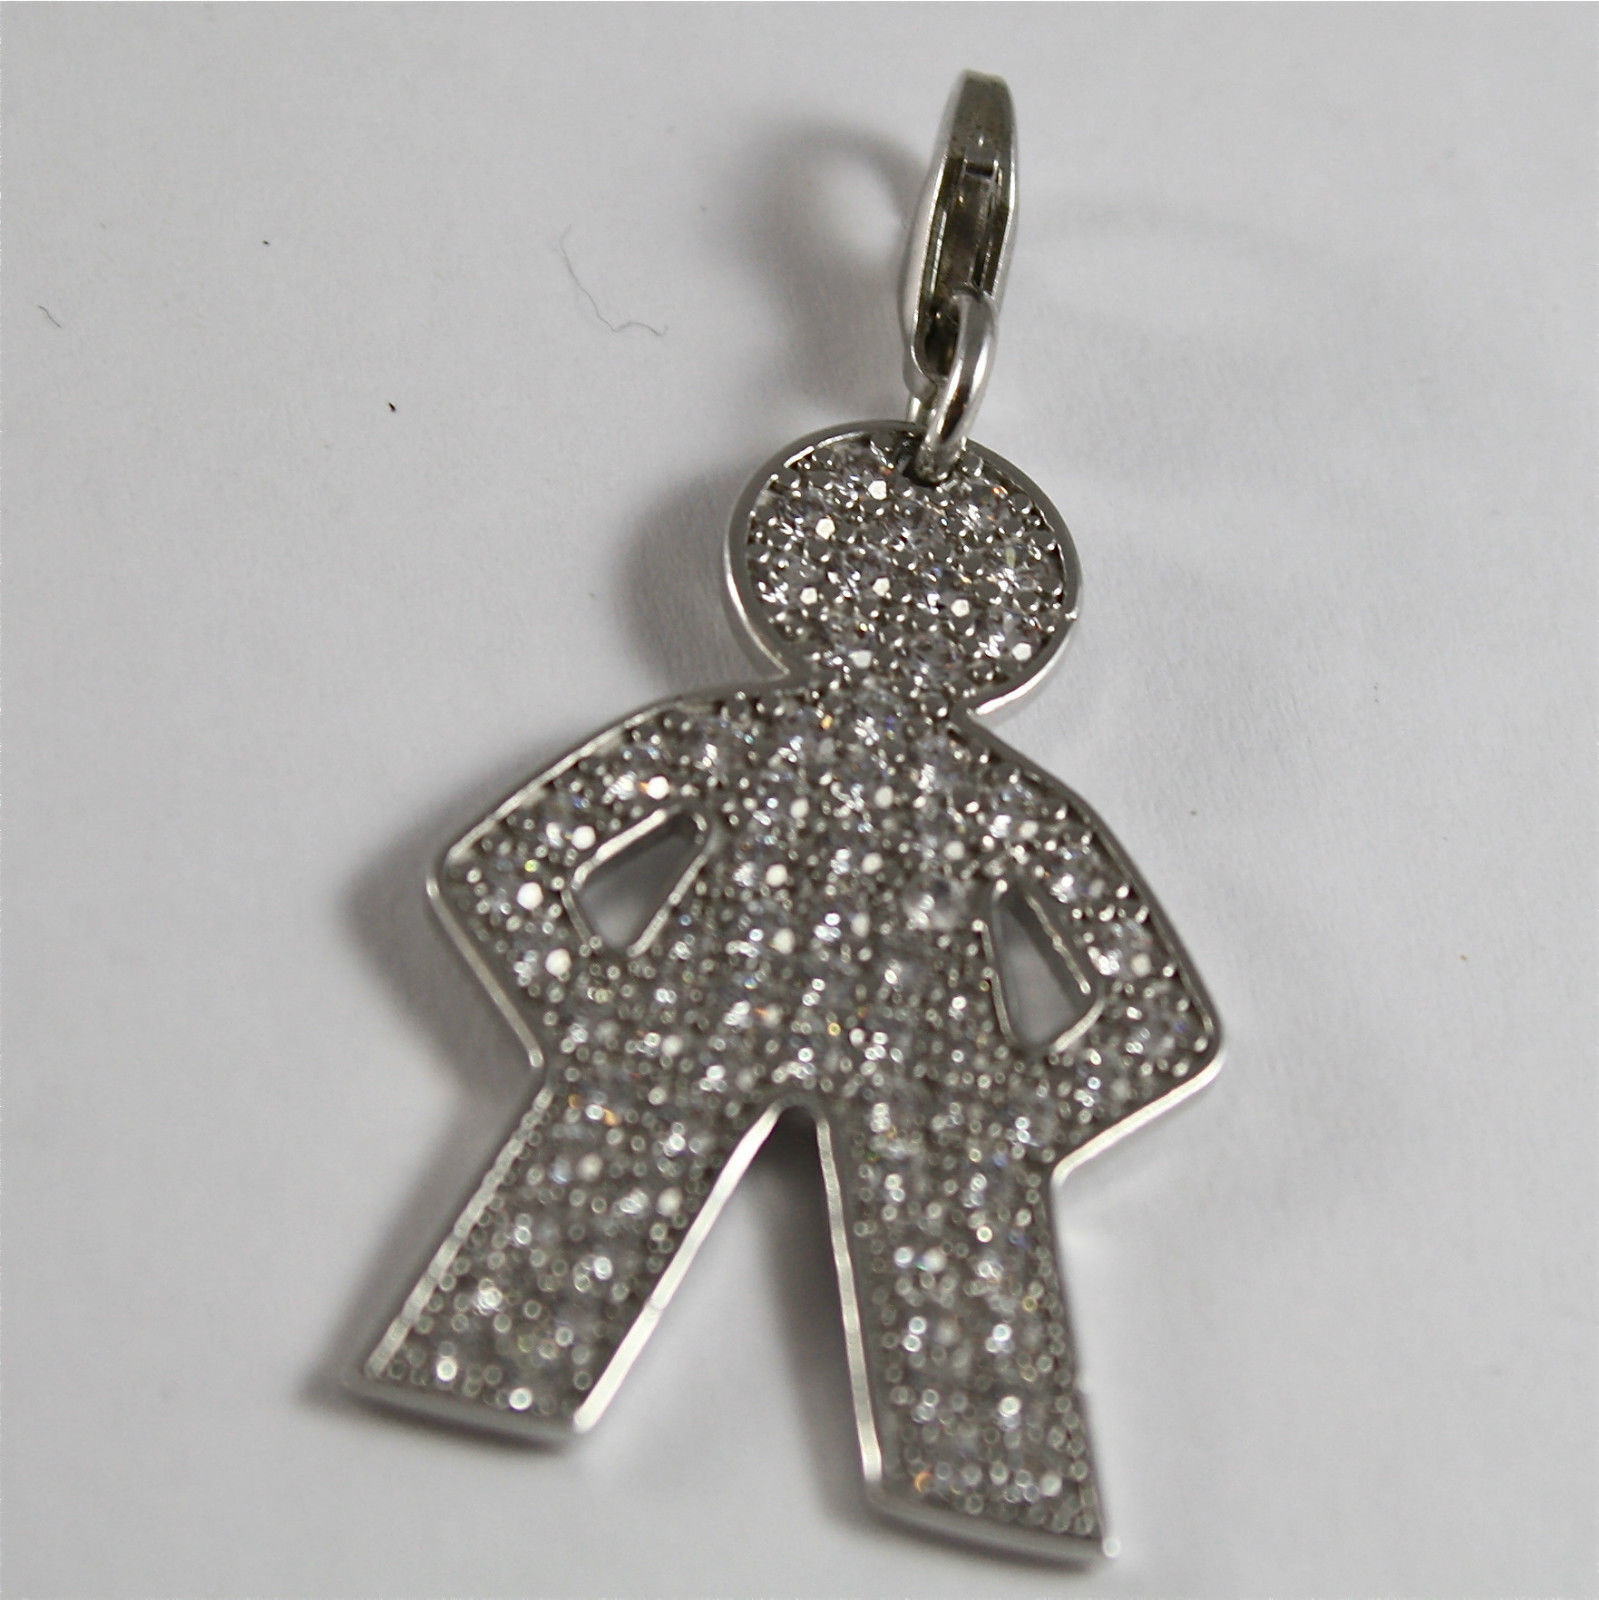 925 SILVER, AQUAFORTE PENDANT, RHODIUM TREATMENT, BABY SHAPED, FACETED ZIRCONIA.